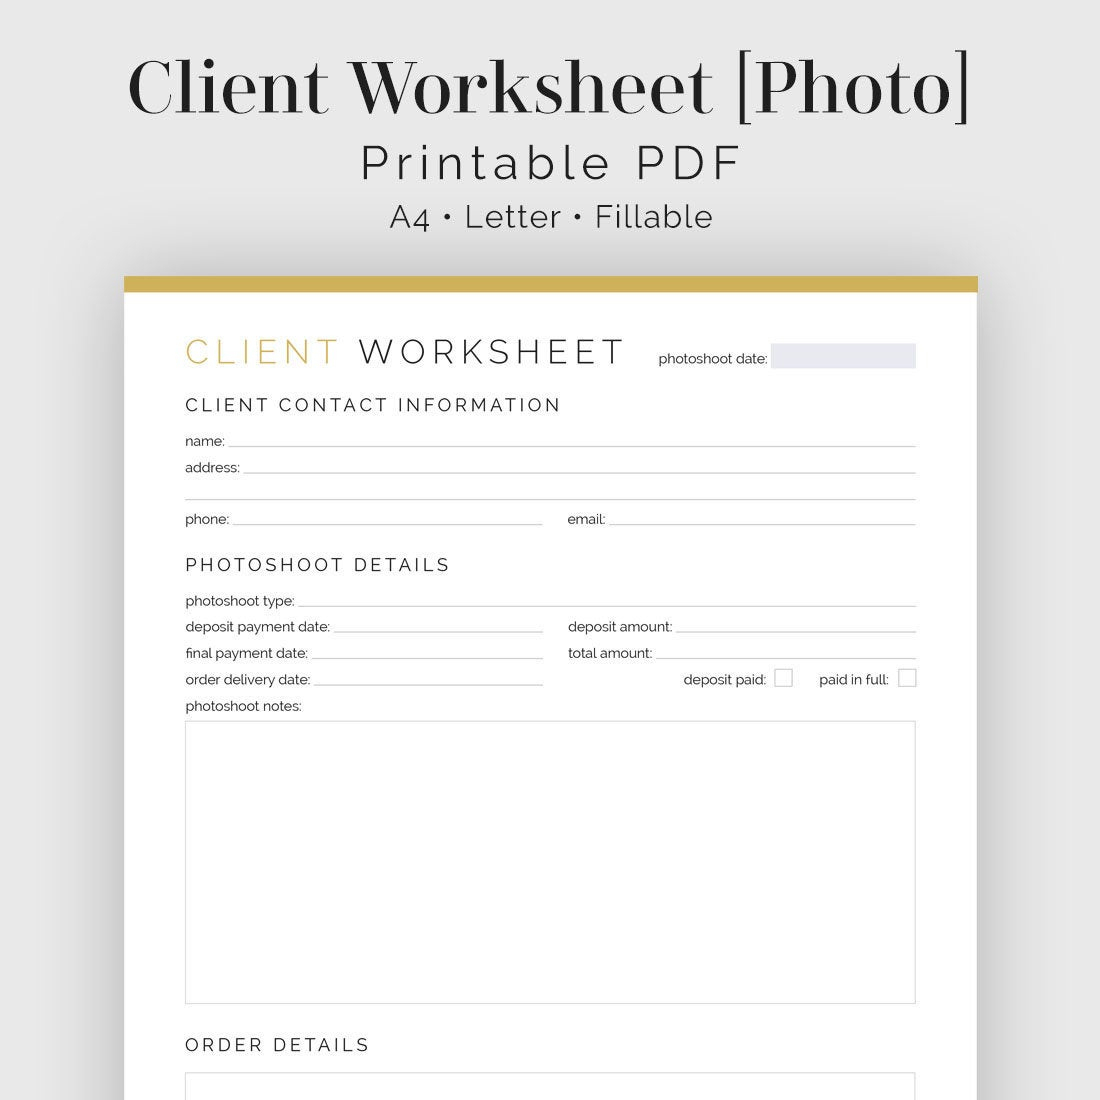 Client Worksheet Photography Fillable Printable Pdf | Etsy | Printable Photography Worksheets